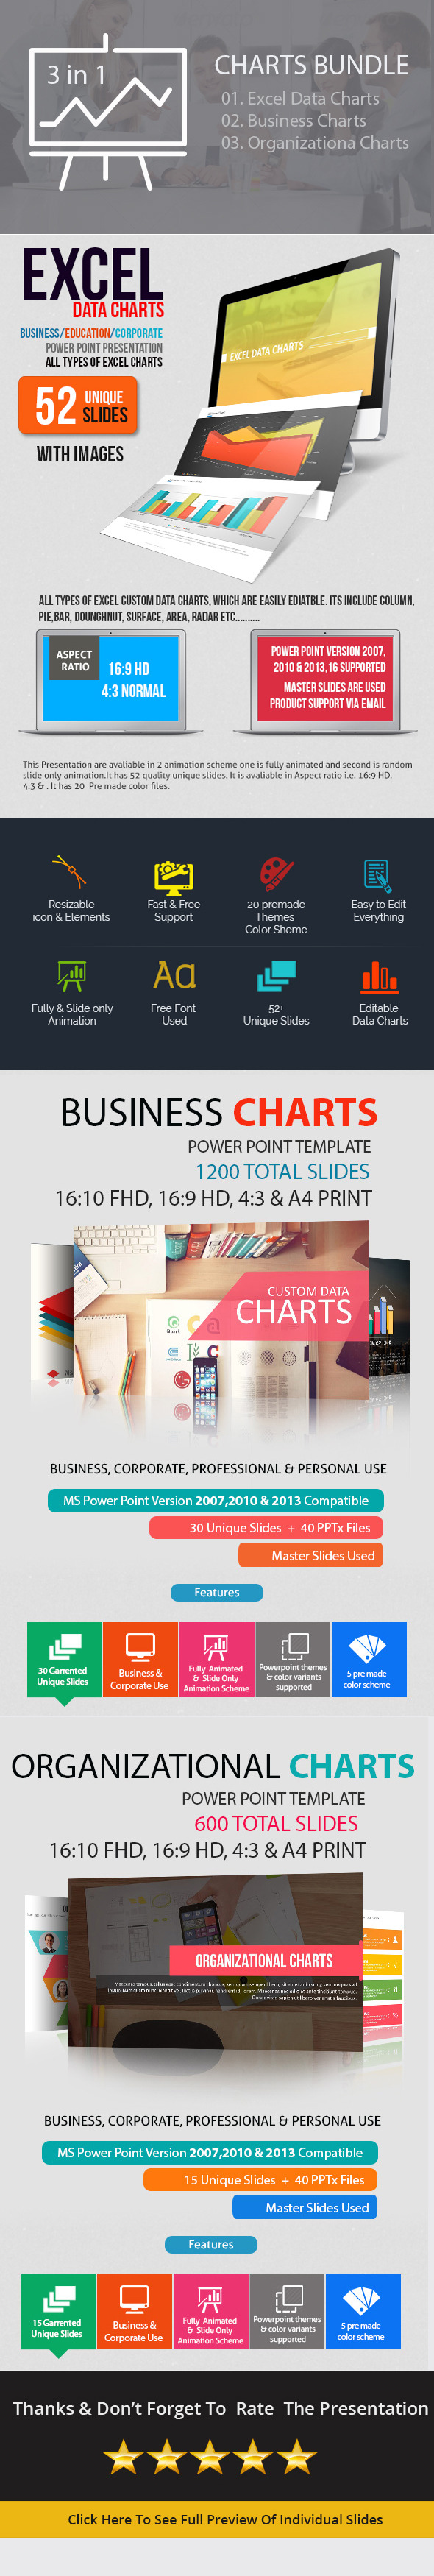 Charts Bundle 3 in 1 Power Point Presentation - Business PowerPoint Templates